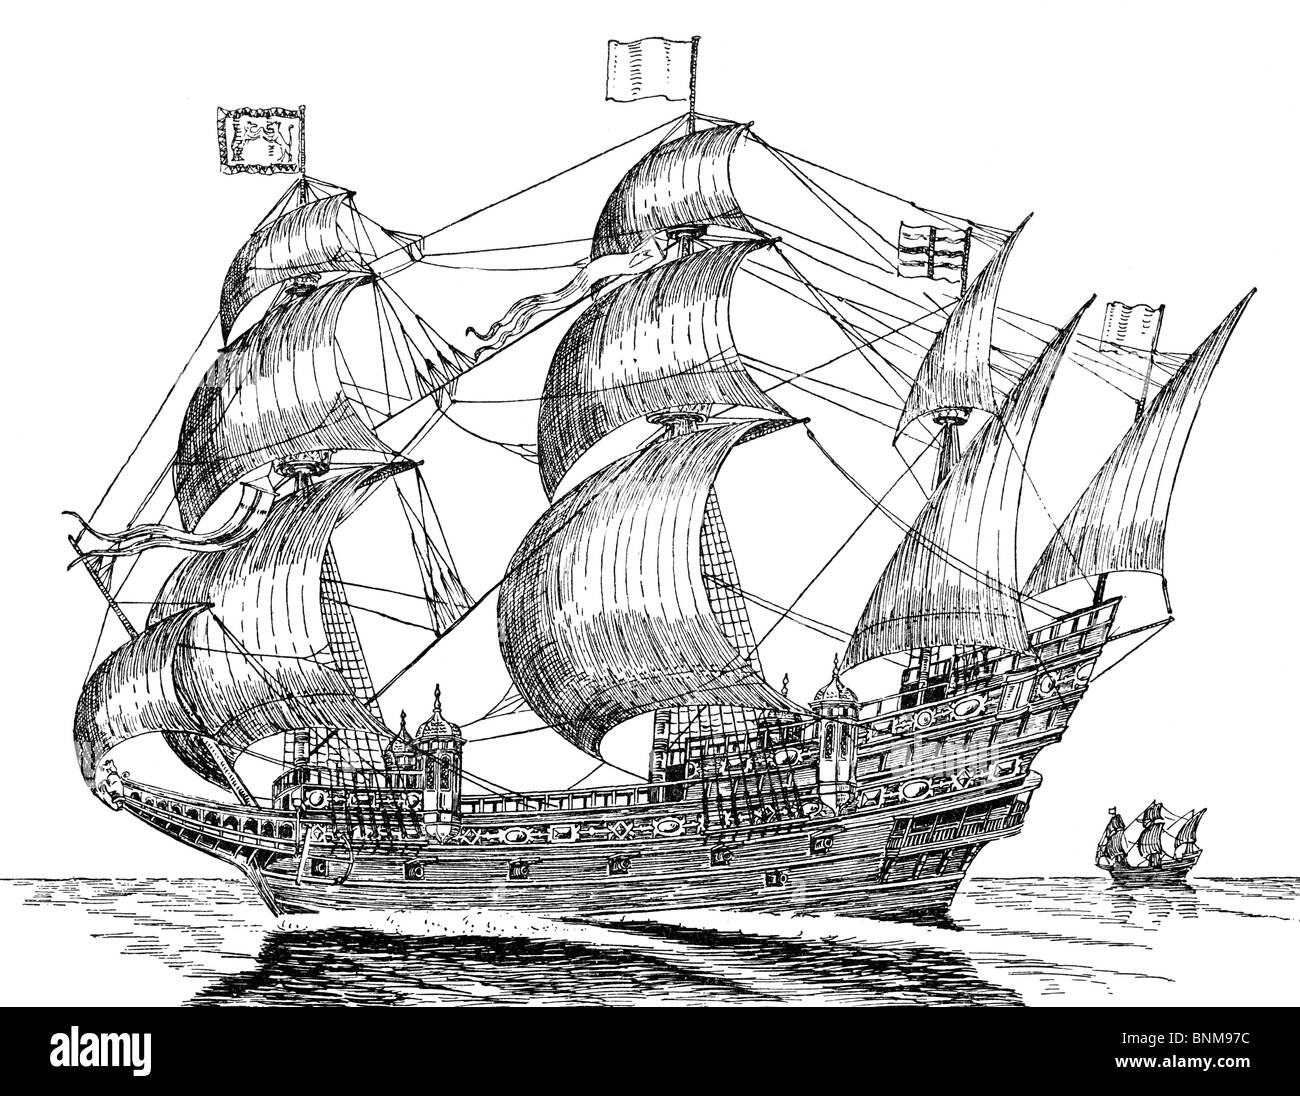 Black and White Illustration of an Elizabethan Galleon; 16th Century - Stock Image